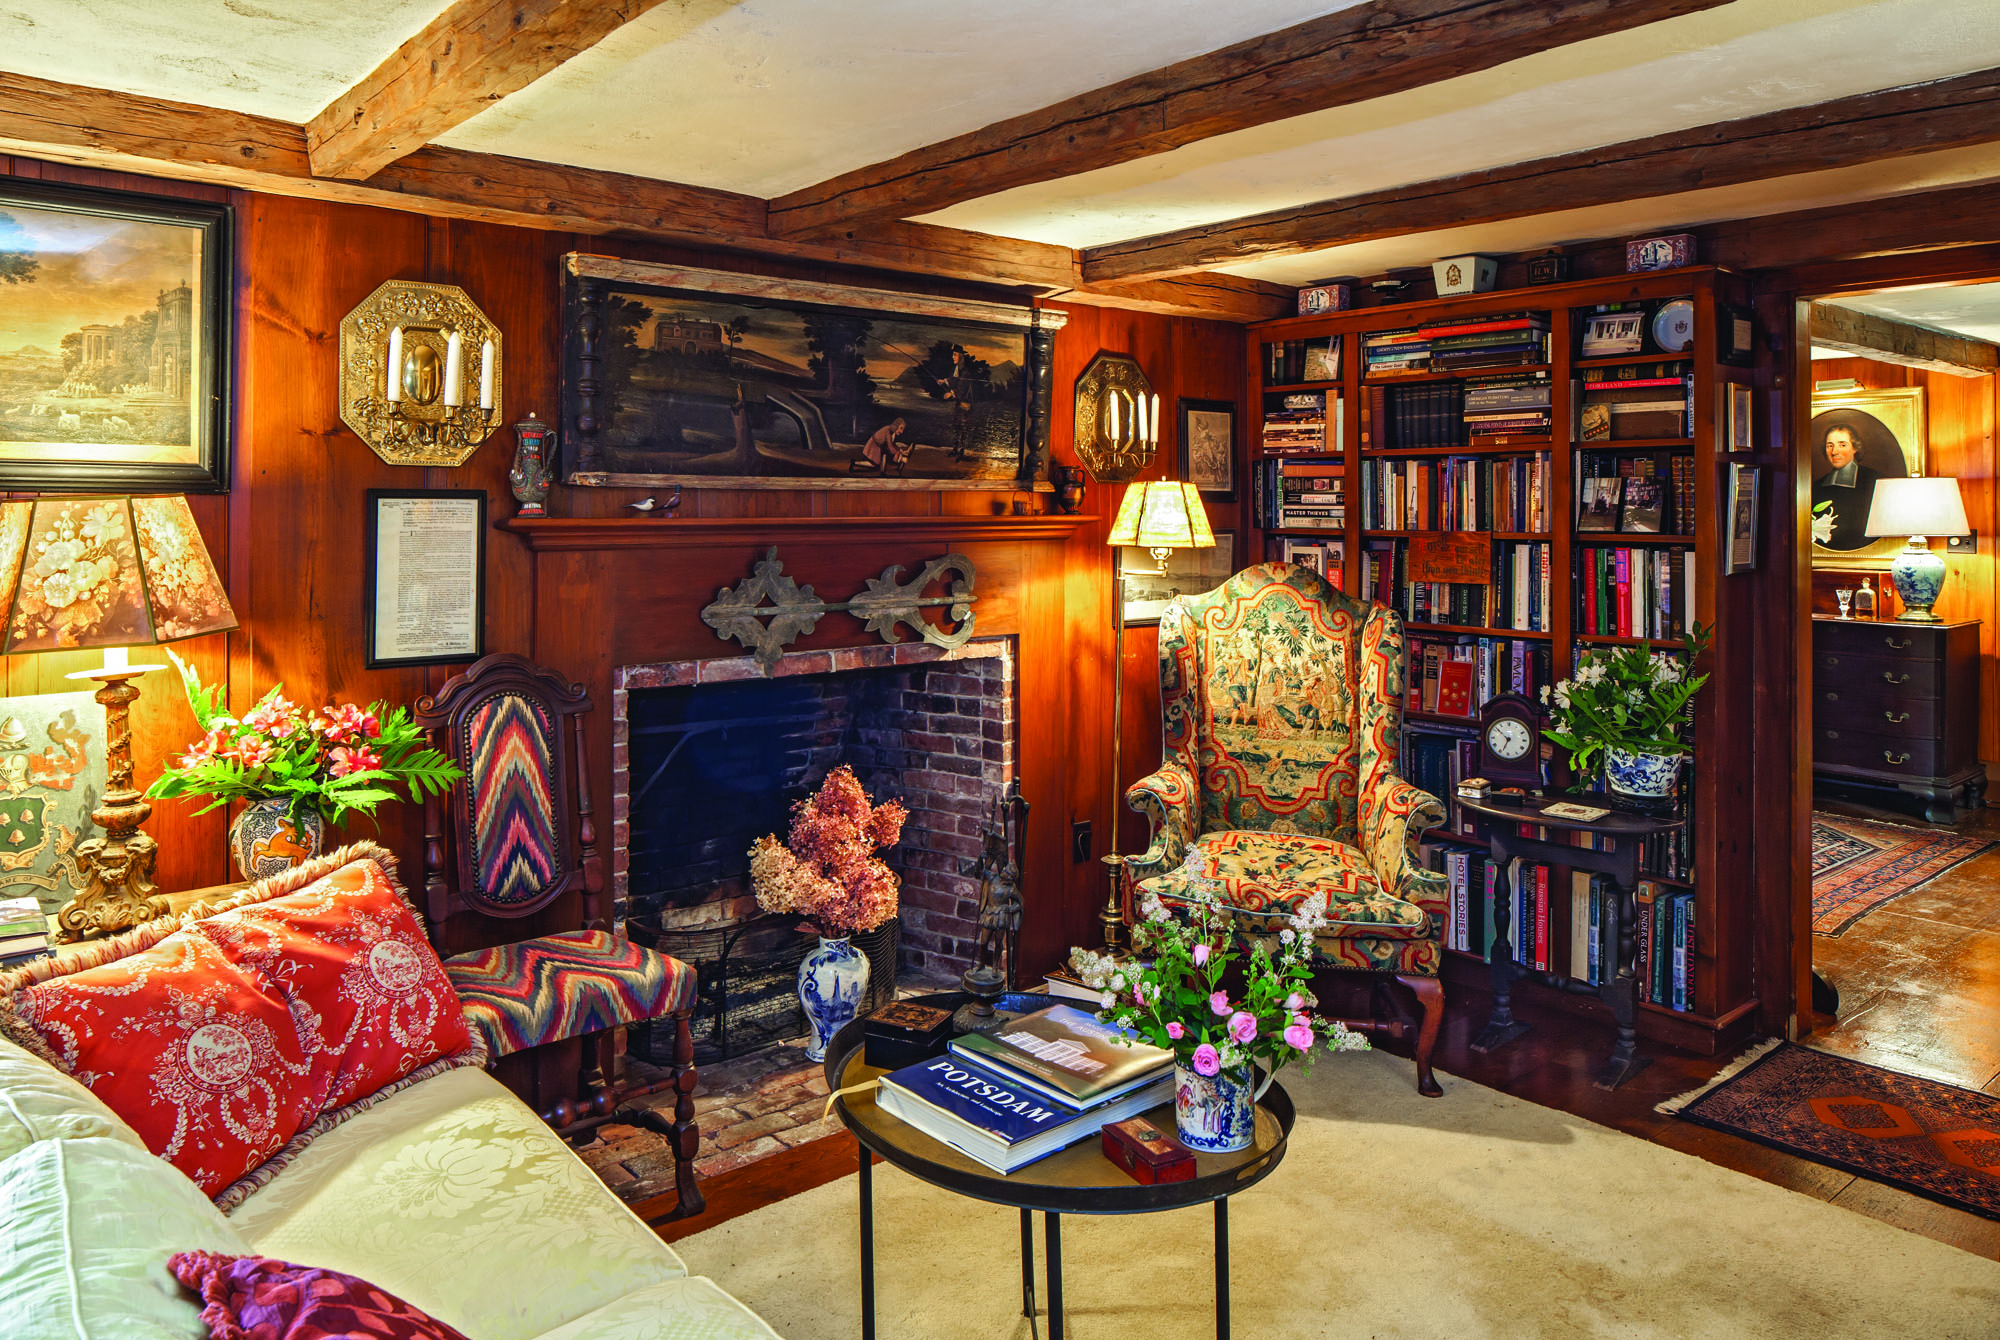 Above the fireplace in the library hangs a 1690 overmantel painting from Maryland, featuring marbleized mouldings and turnings. Below it is a fragment of a 19th-century banner weather- vane. The sconces are Dutch, and the wing chair upholstered in needlepoint dates to 18th-century England. The smaller chair, with flame-stitch upholstery, was made in Boston in 1700.